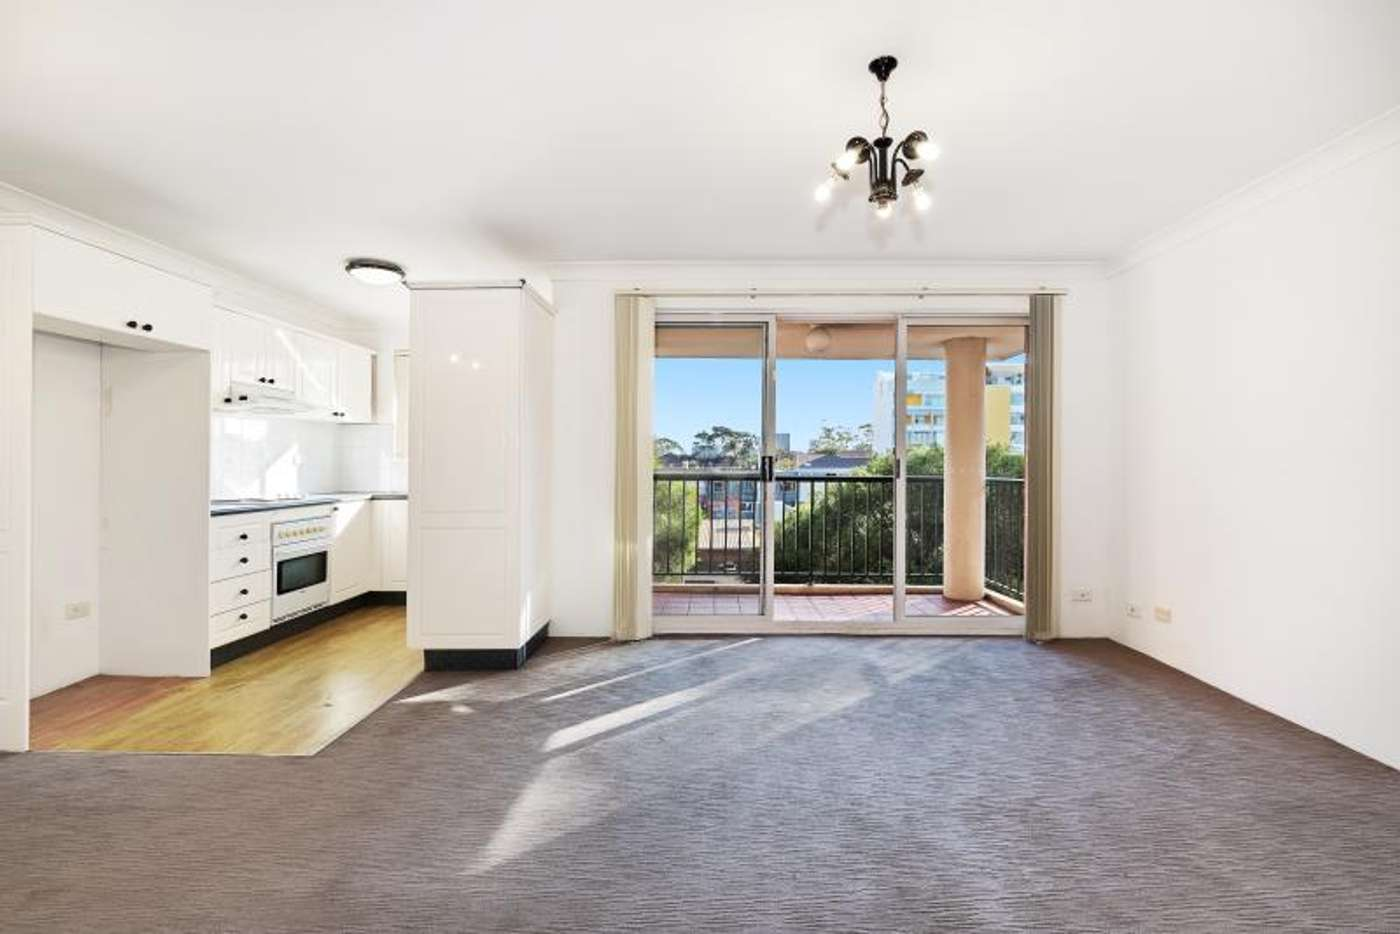 Main view of Homely apartment listing, 11/122 Todman Avenue, Kensington NSW 2033